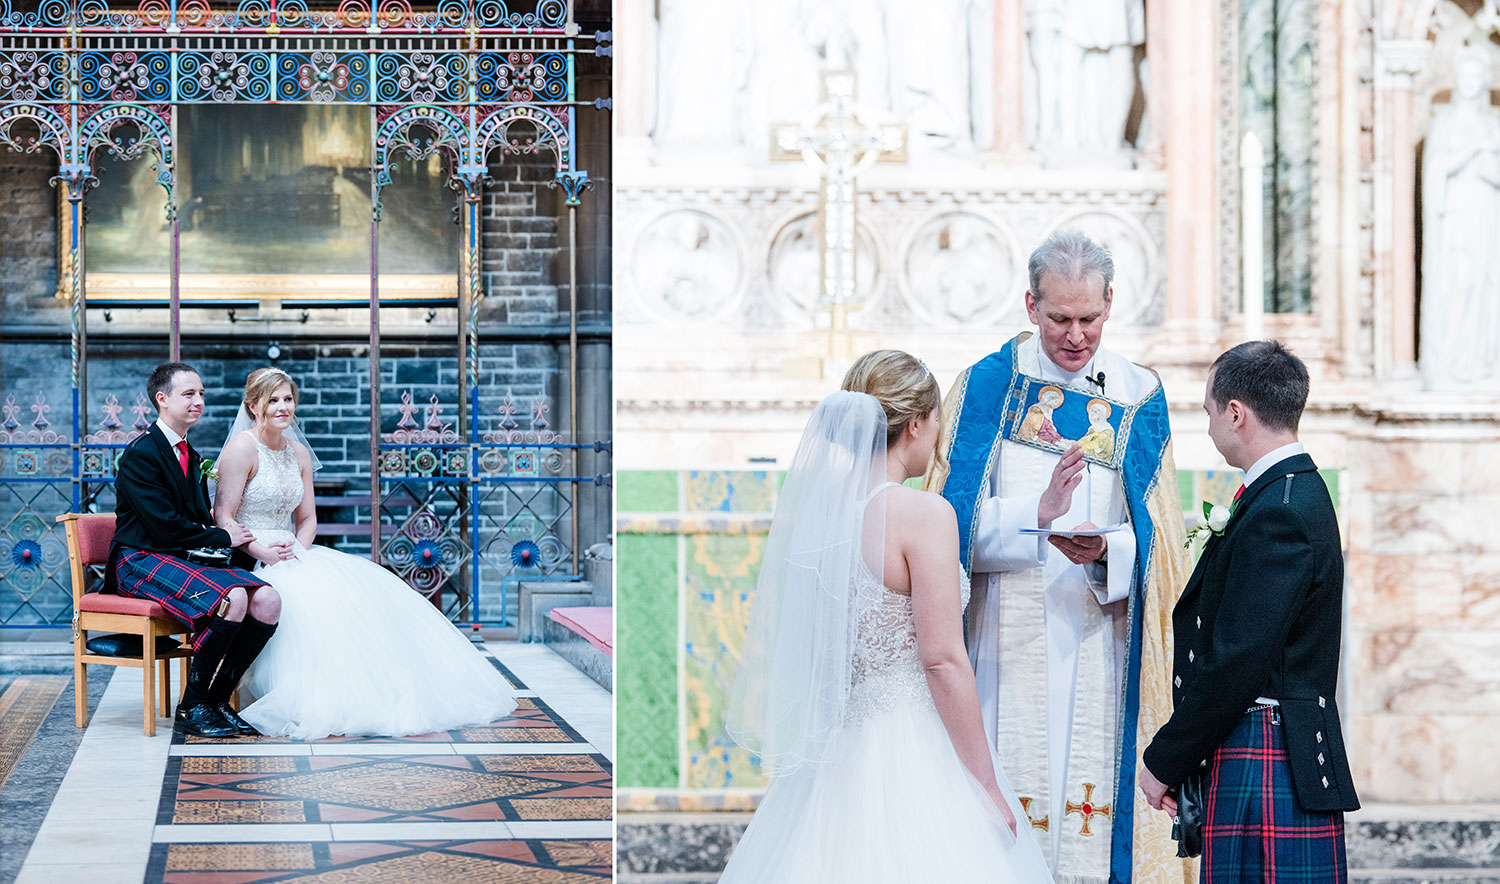 I loved this wedding at St Mary's Cathedral in Edinburgh! Lots of space to walk around, the minister was so lovely and the couple were totally relaxed and keen to have photos during the ceremony, best spot for the photographer during the wedding ceremony